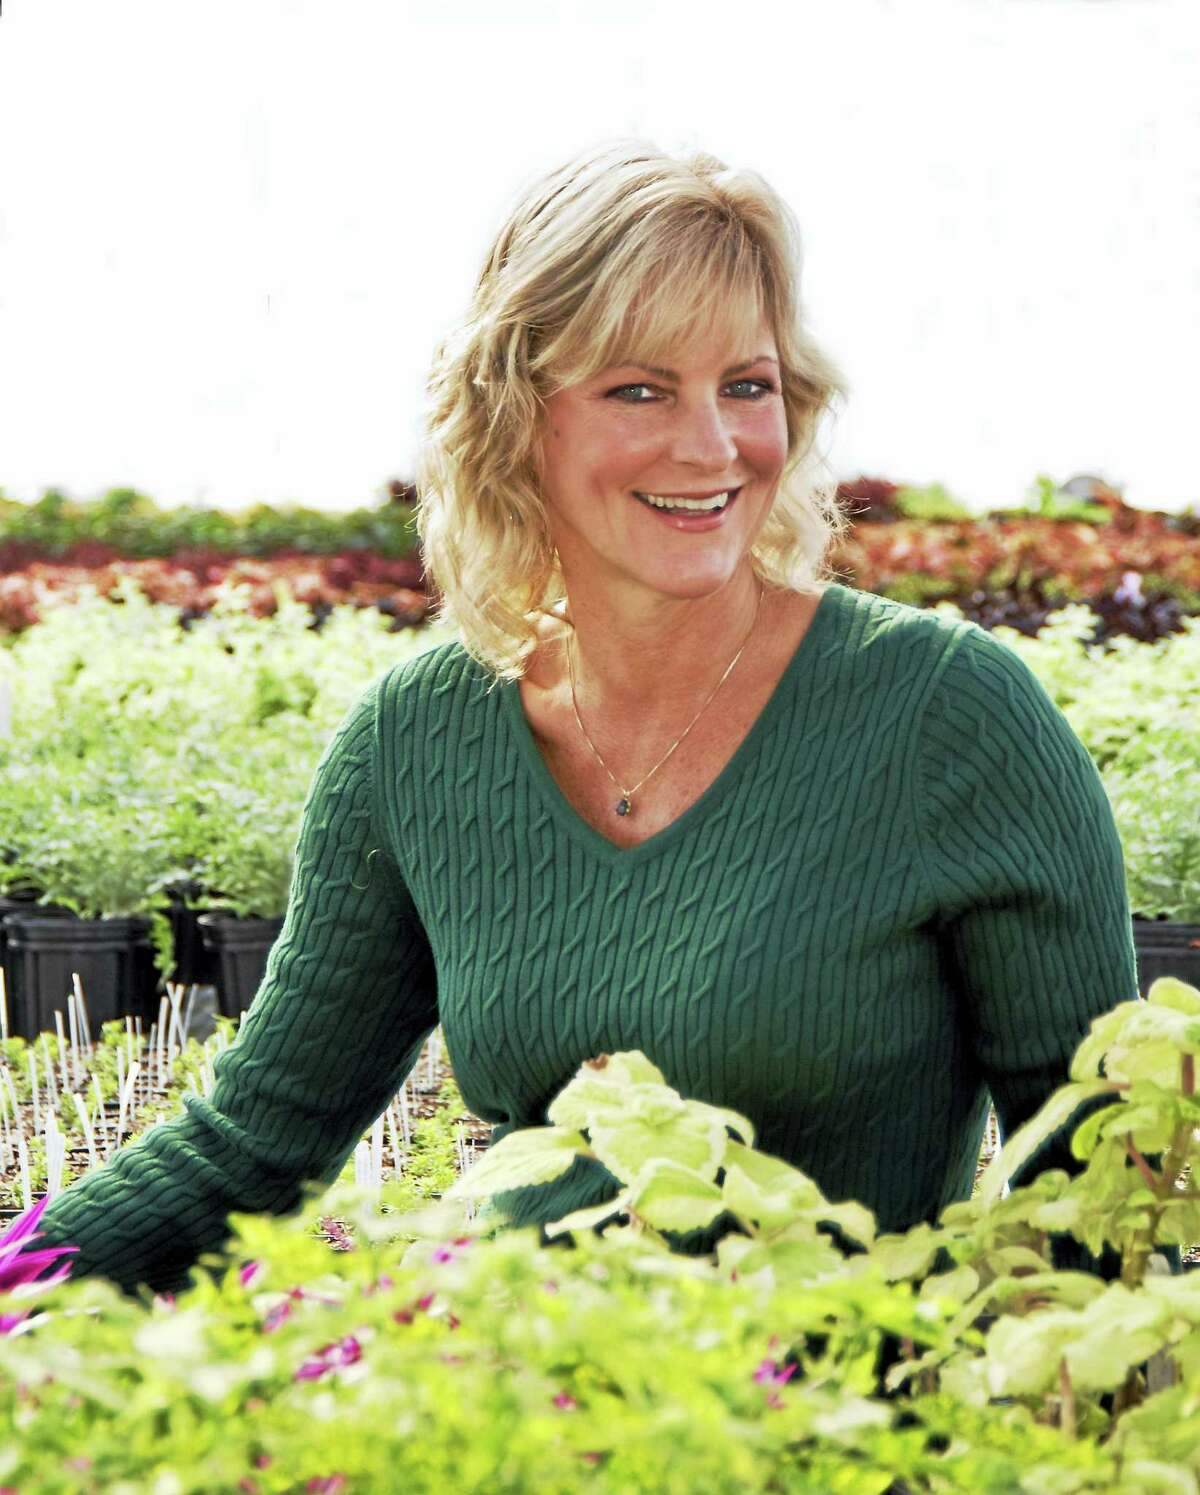 White Flower Farm: Container Design Trends for 2016 The possibilities are endless with container gardening! The gardener's choices include everything from the container to the plants, and experience is essential when making decisions. Nursery Manager Barbara Pierson has been creating container gardens both at home and at White Flower Farm for over 20 years, and no one knows more about which plants are tried and true and which are promising new introductions. Learn from this illustrated talk about current trends in container gardening on Sunday, April 3 at 1 p.m. at the Essex Town Hall. Many thanks to the Essex Garden Club for co-sponsoring this program!Nursery Manager Barbara Pierson has been with White Flower Farm for 17 years. A graduate of Cornell University, with a degree in floriculture and ornamental horticulture, Barb developed a passion for plants at an early age at her parents' nursery. She's now a frequent guest on national and local radio and television, and interviewed as a gardening expert by national publications.This program is free and open to the public. Please call the Essex Library to register or for more information at (860)767-1560. The Essex Town Hall is located at 29 West Avenue in Essex.